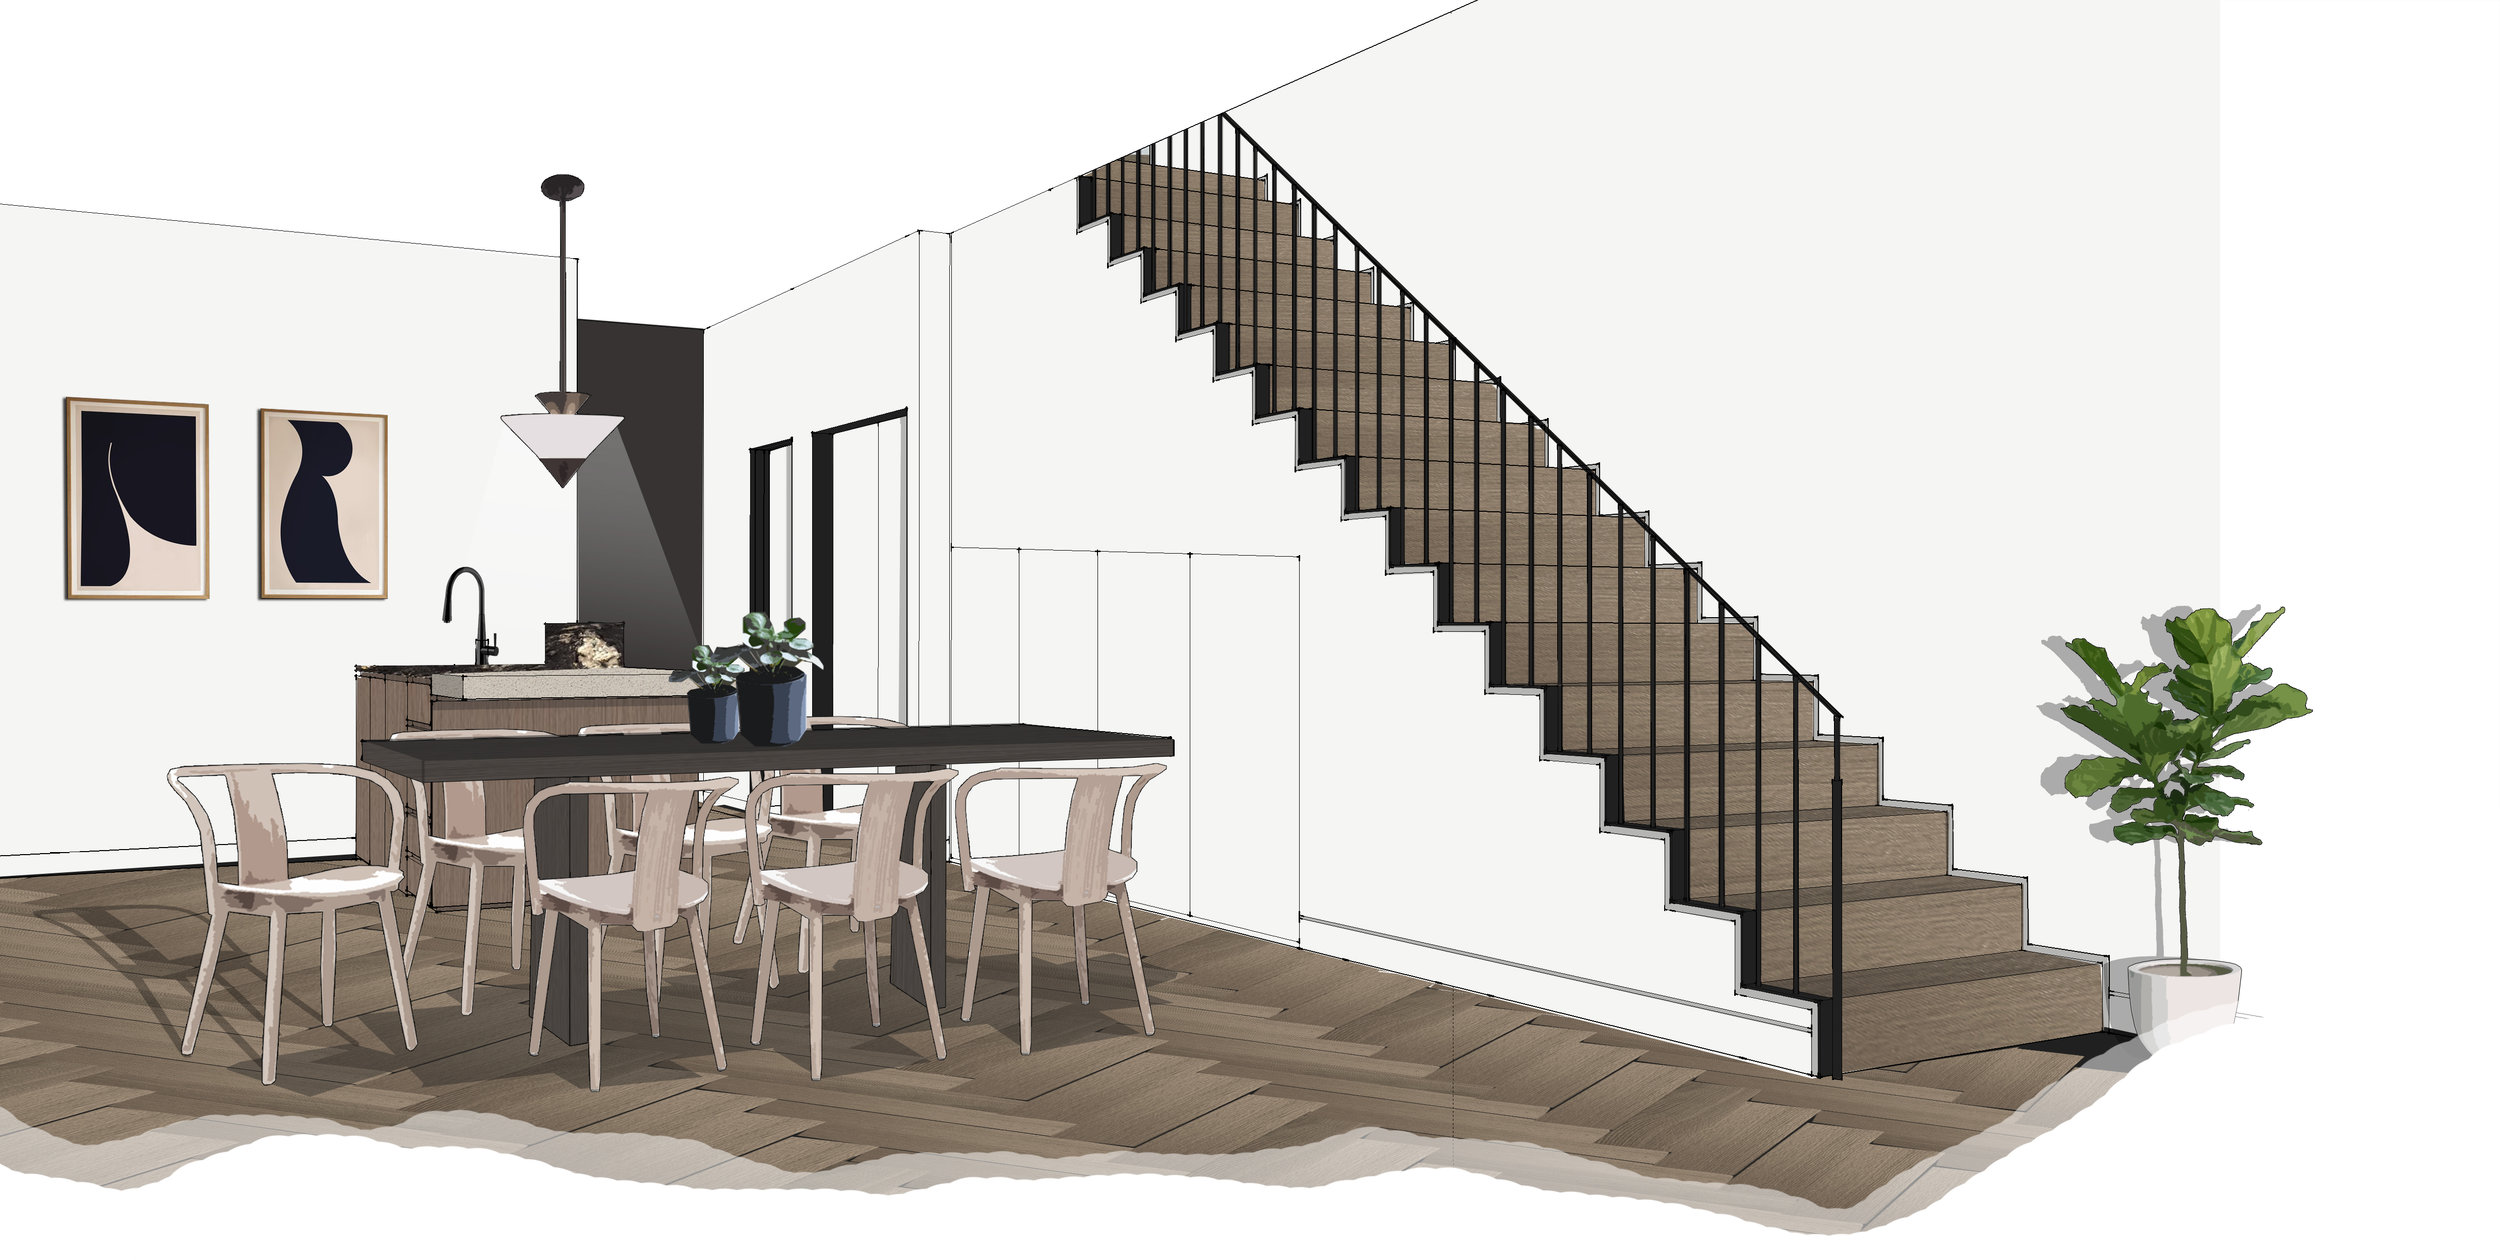 65 Pakington_Townhouse 3_Ground Flr Stair Perspective.jpg